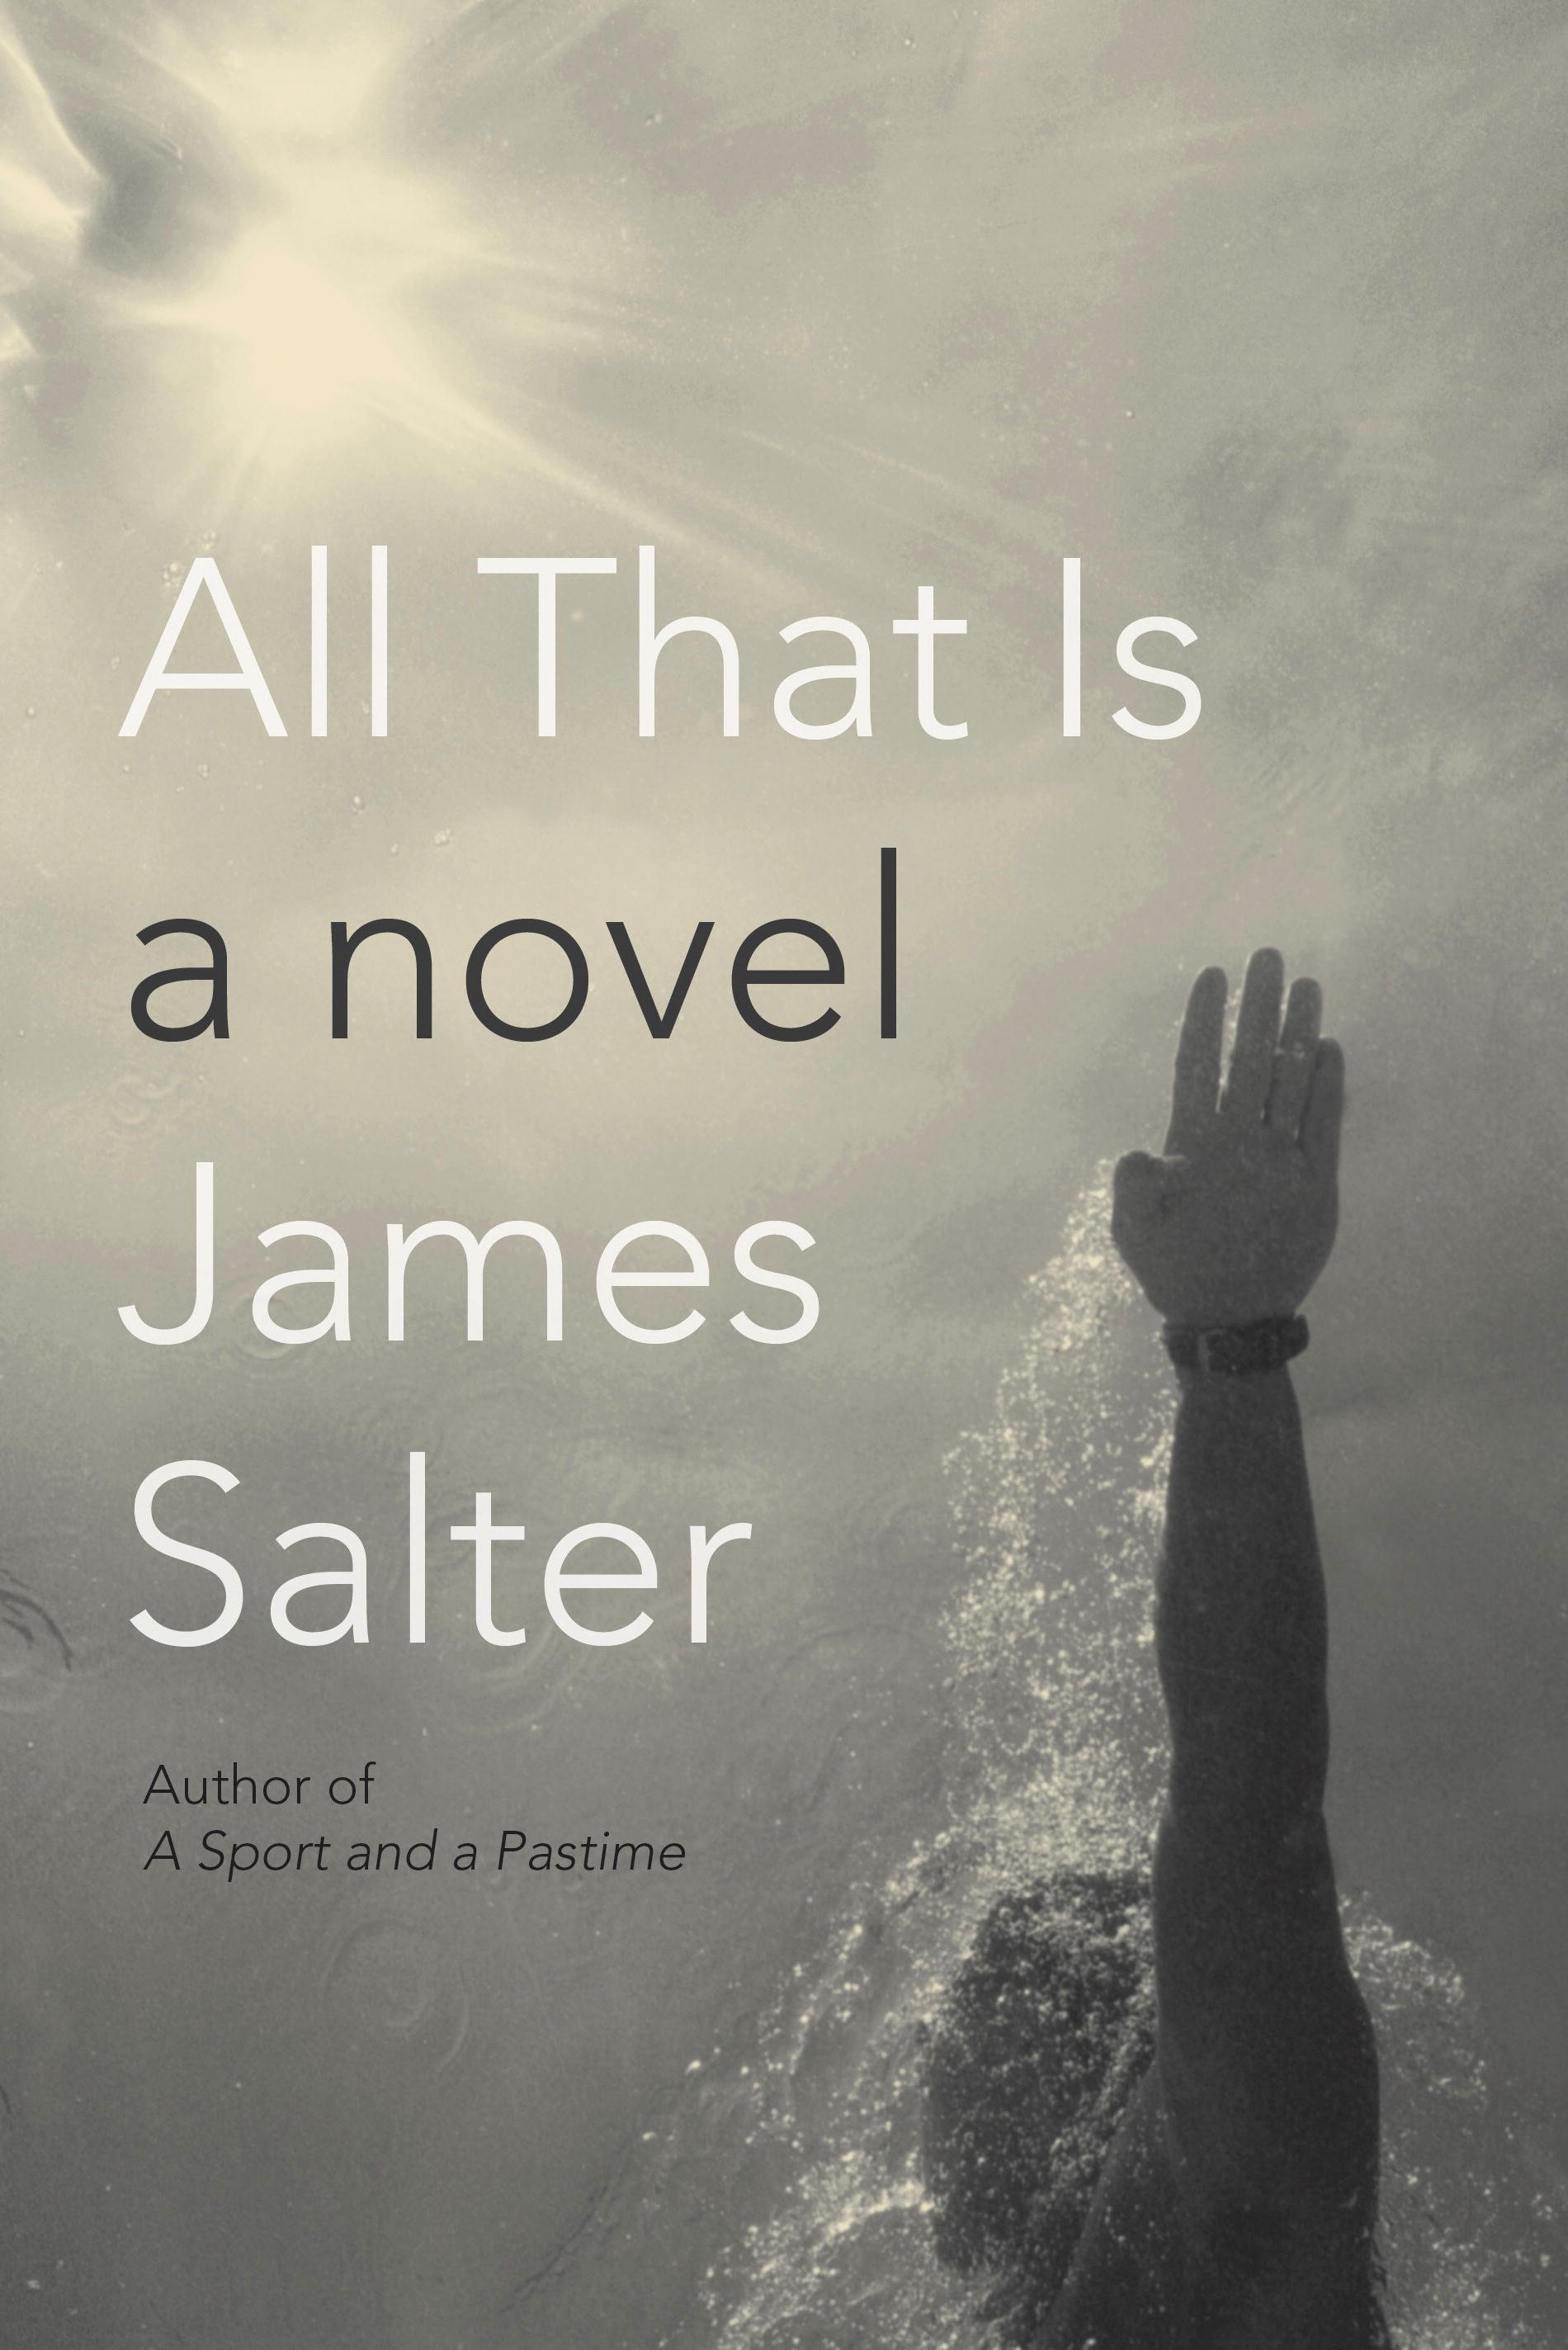 James Salter speaks this week at the Ransom Center